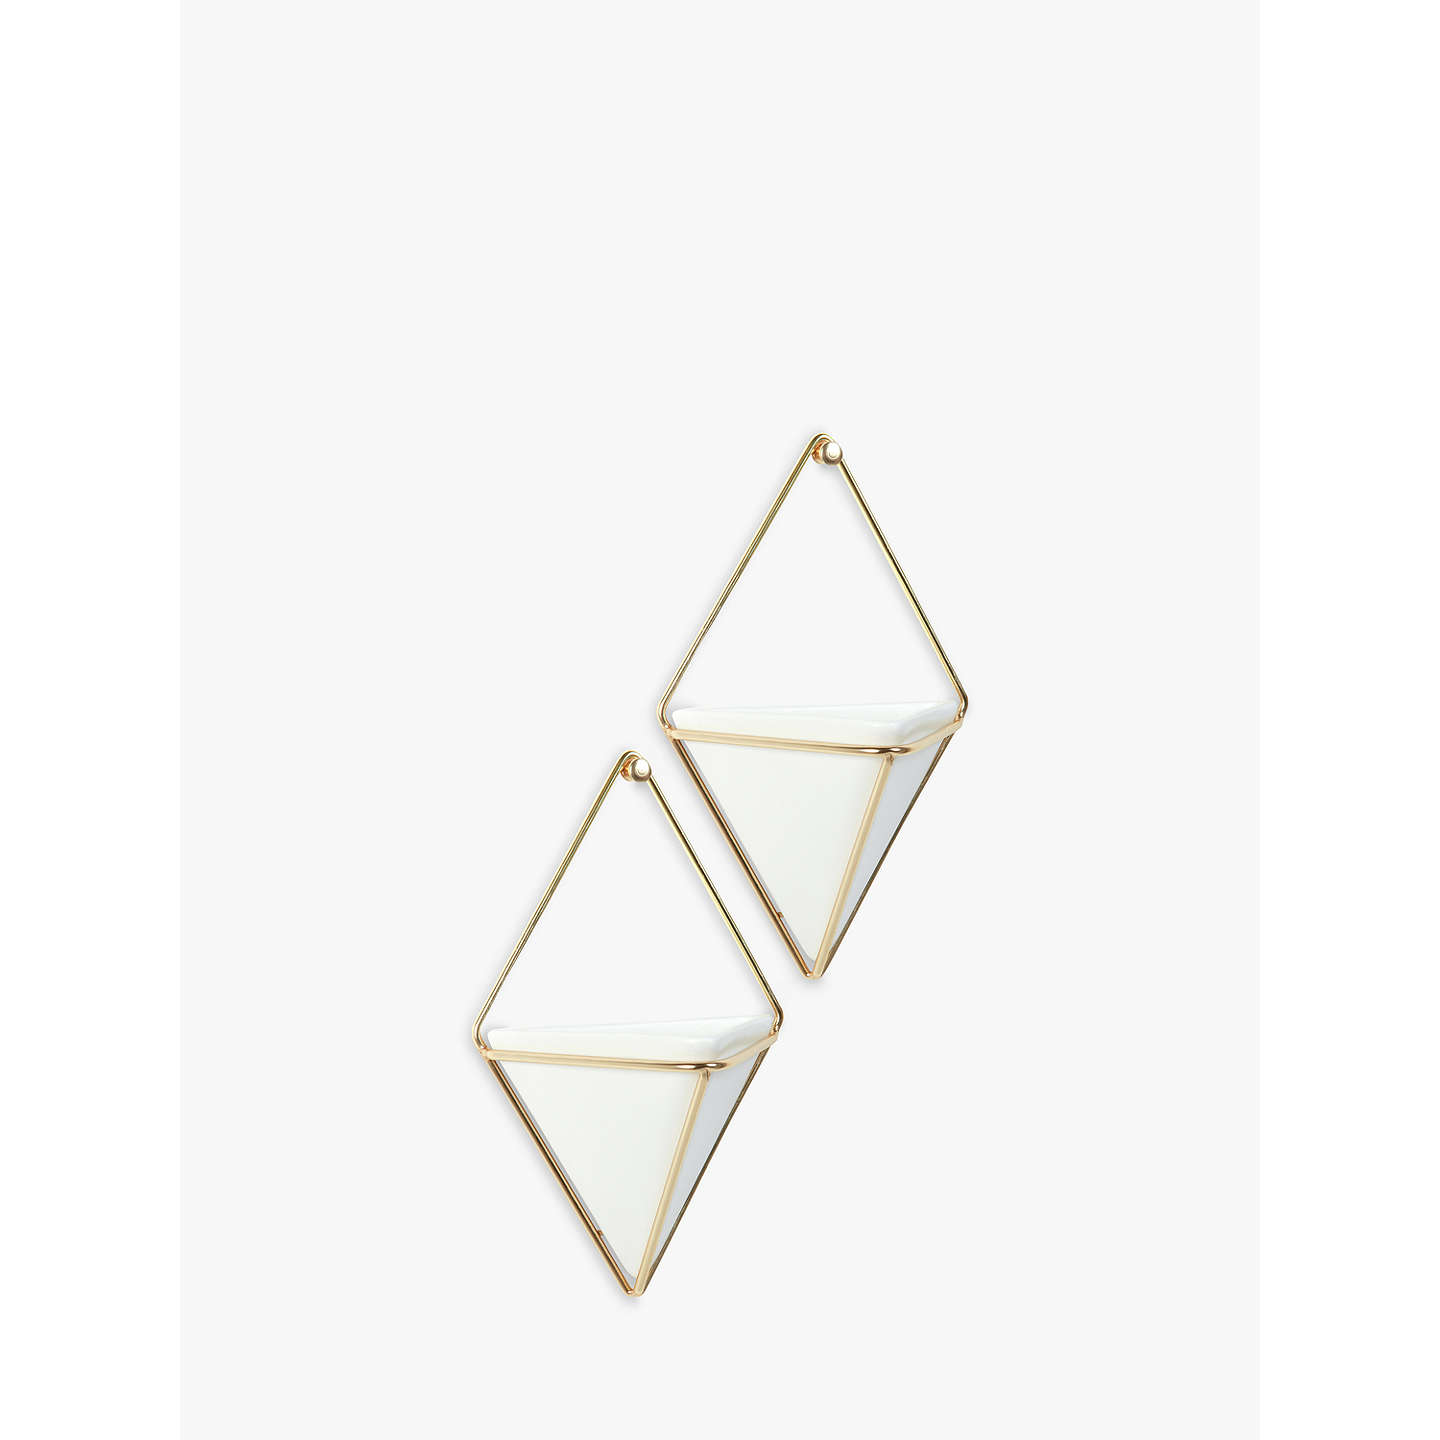 Buy Umbra Trigg Small Wall Planters, White, Set of 2 Online at johnlewis.com